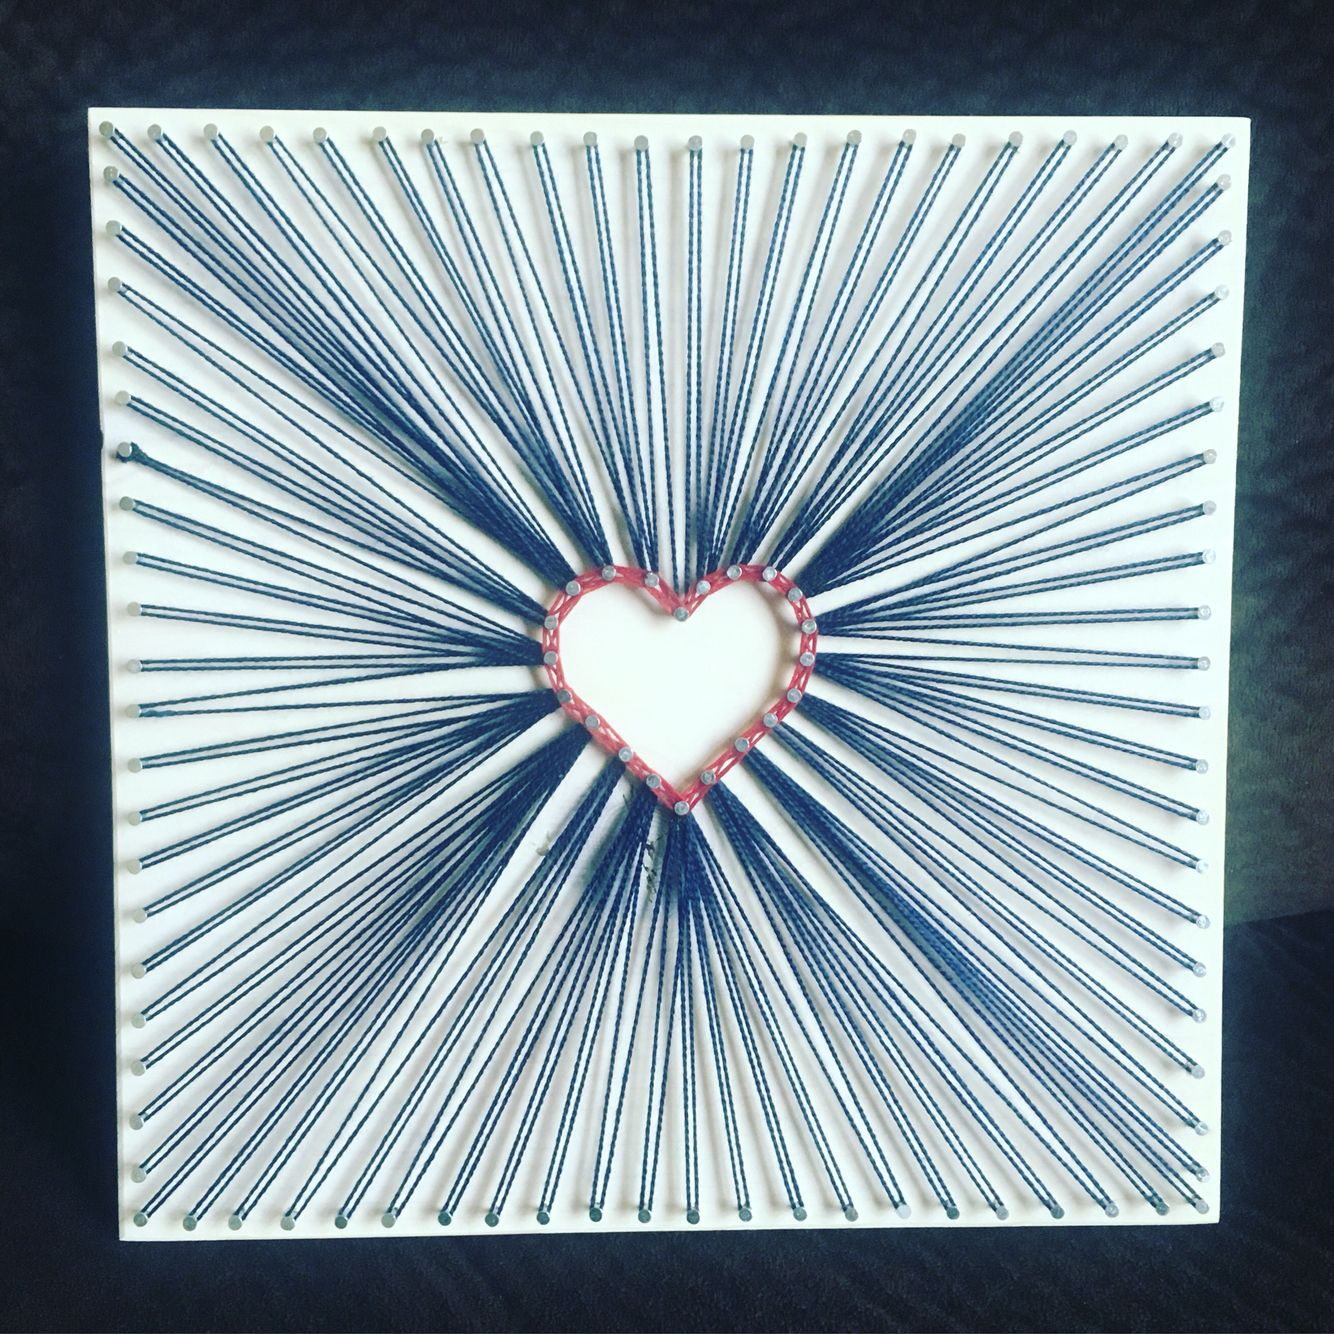 Pin by Courtney Jones on String Art | Pinterest | String art and ...